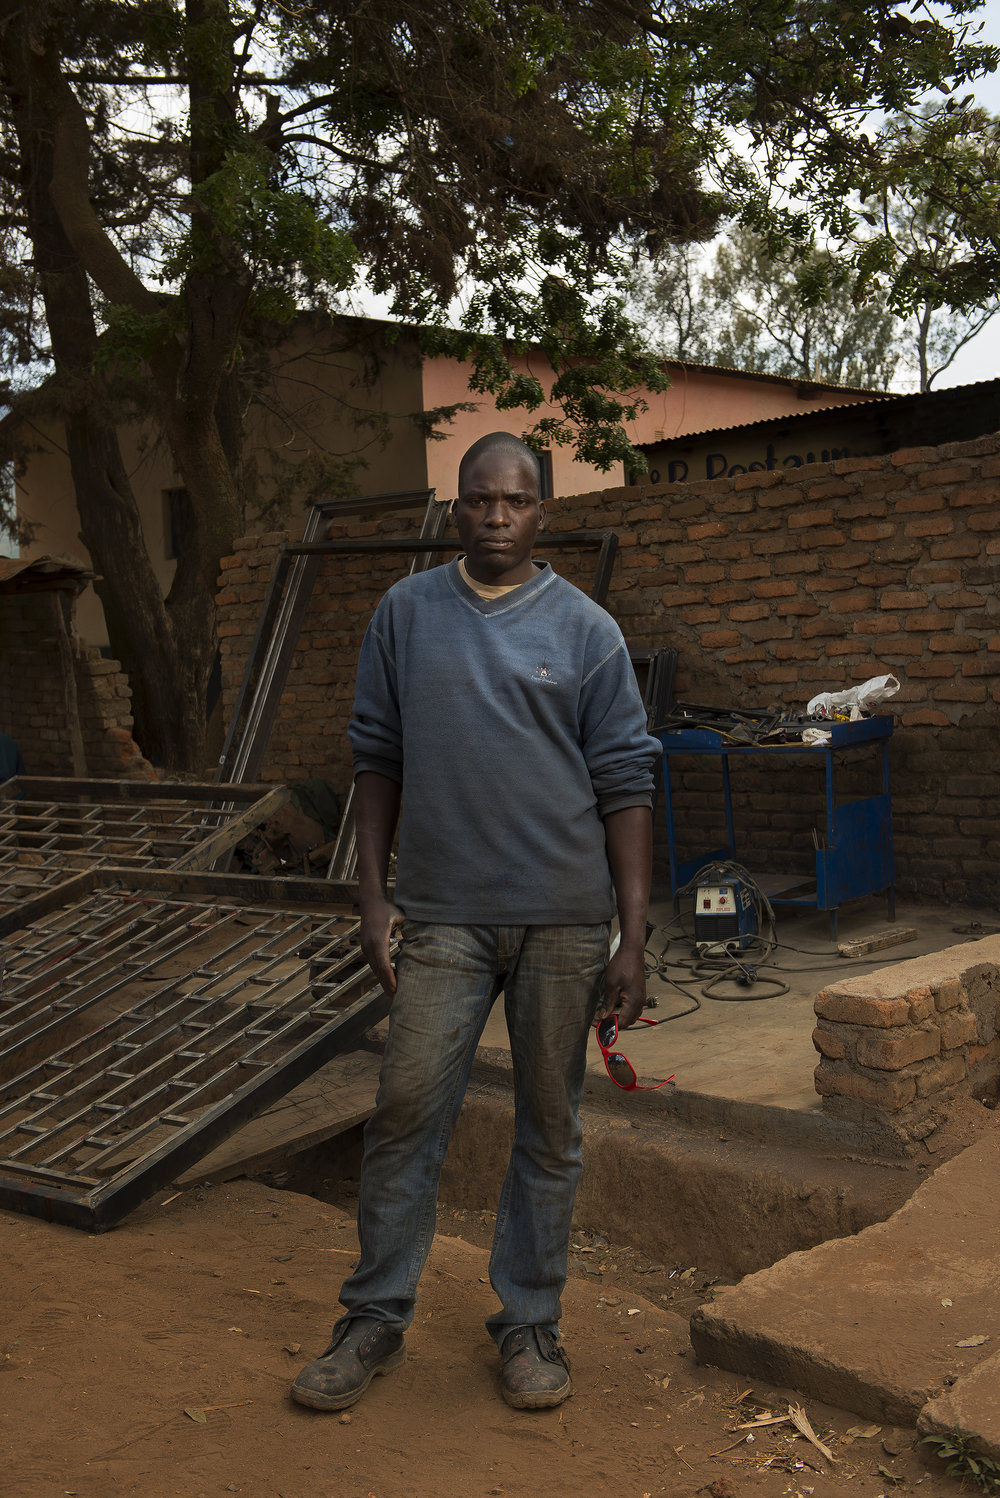 Reuben Chinzery, Welding shop owner Malawi